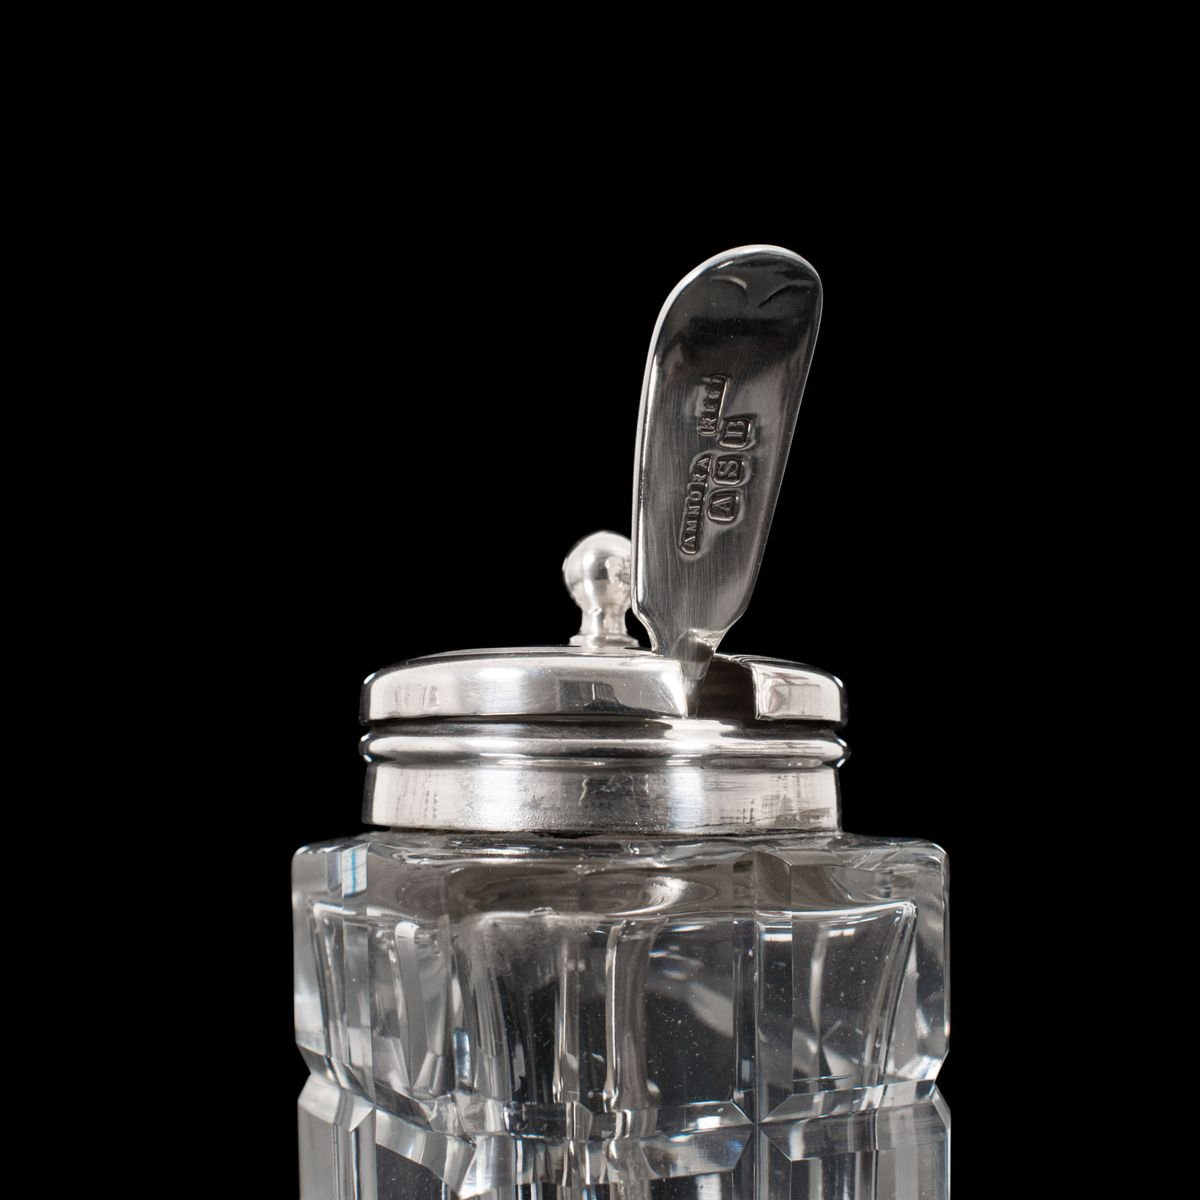 English Art Deco Vintage Silver Plated Salt and Pepper Shakers with Salt Dish 1920s 1930s Decor